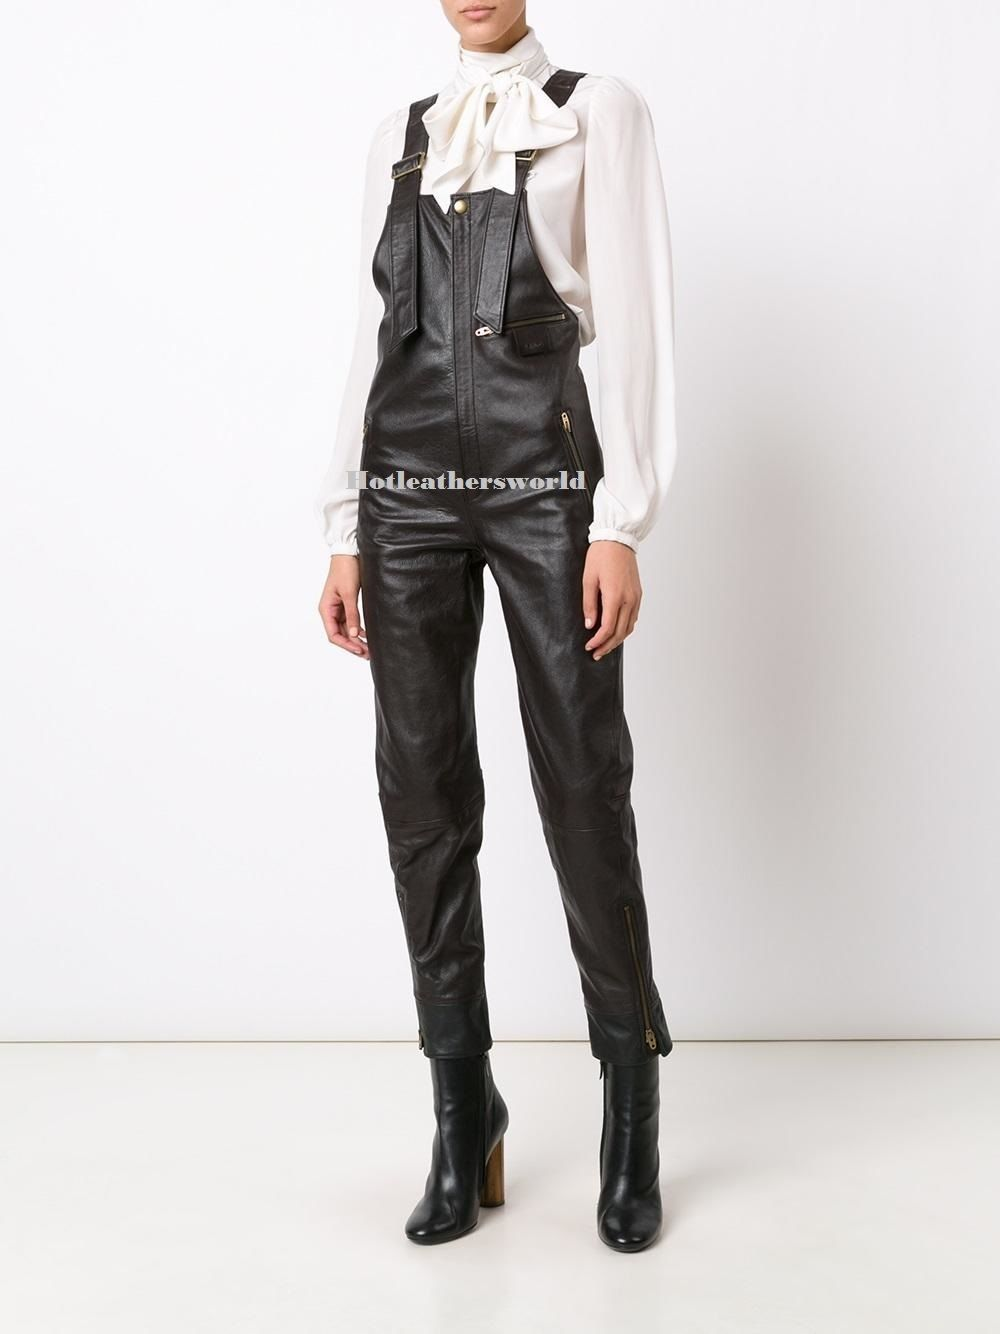 WOMEN LEATHER JUMPSUIT ROMPERS GENUINE LAMBSKIN REAL LEATHER JUMPSUIT-19